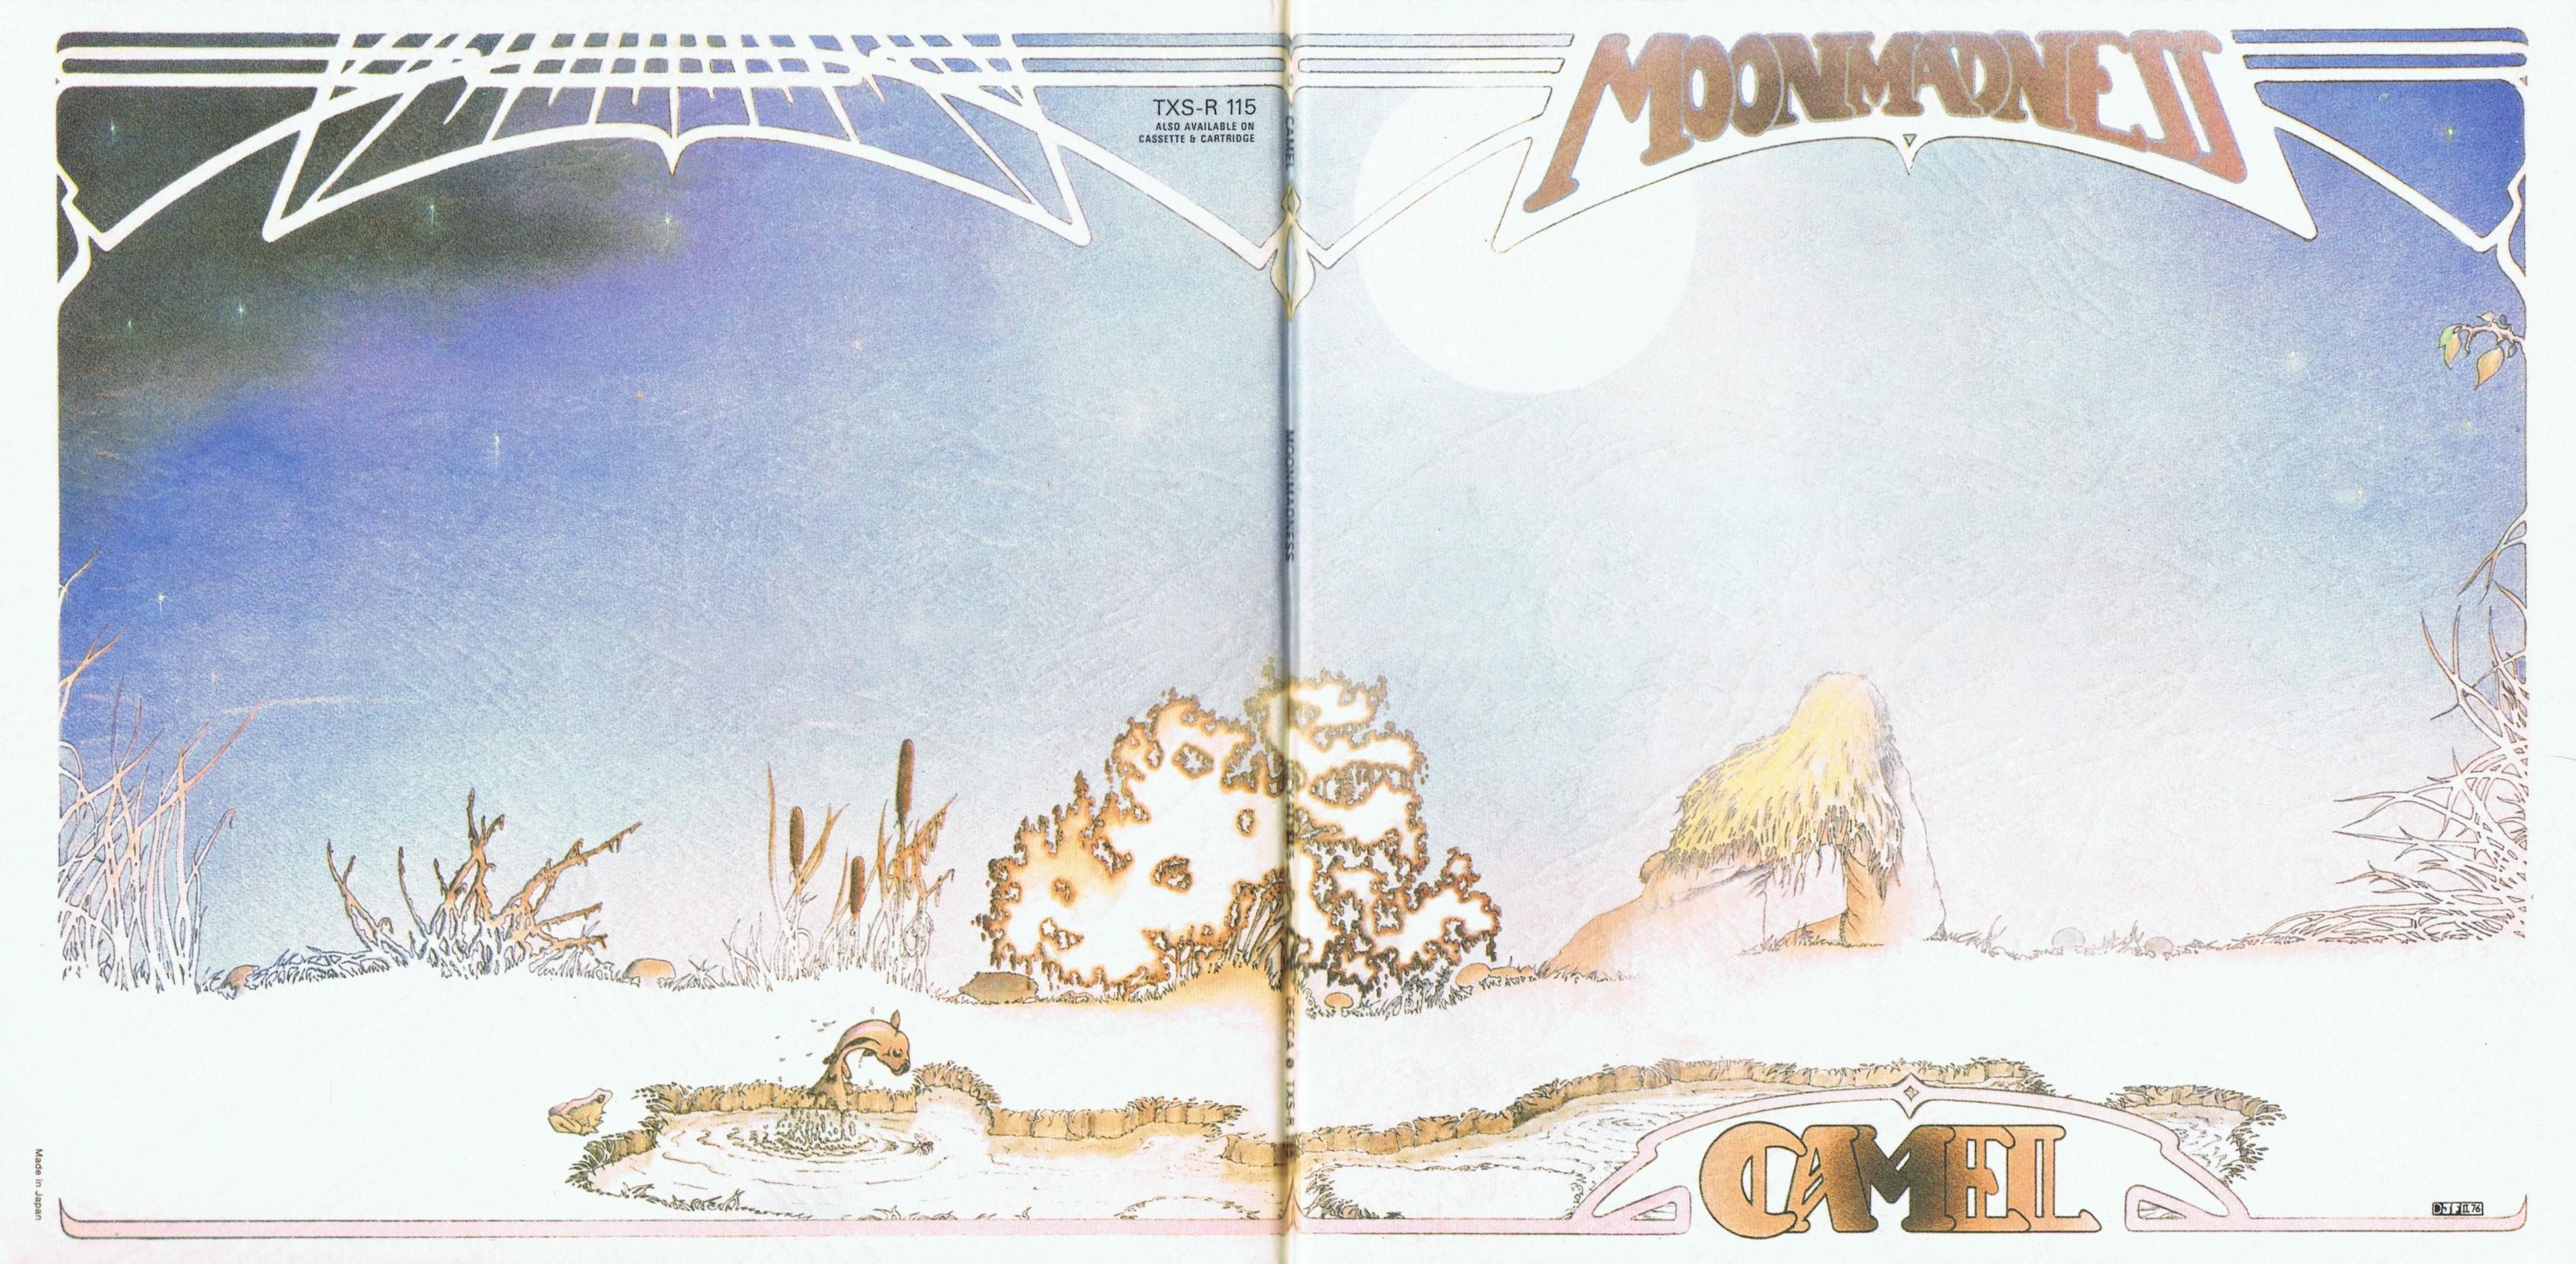 Camel - Moonmadness (1976) - Deluxe Edition (2009)